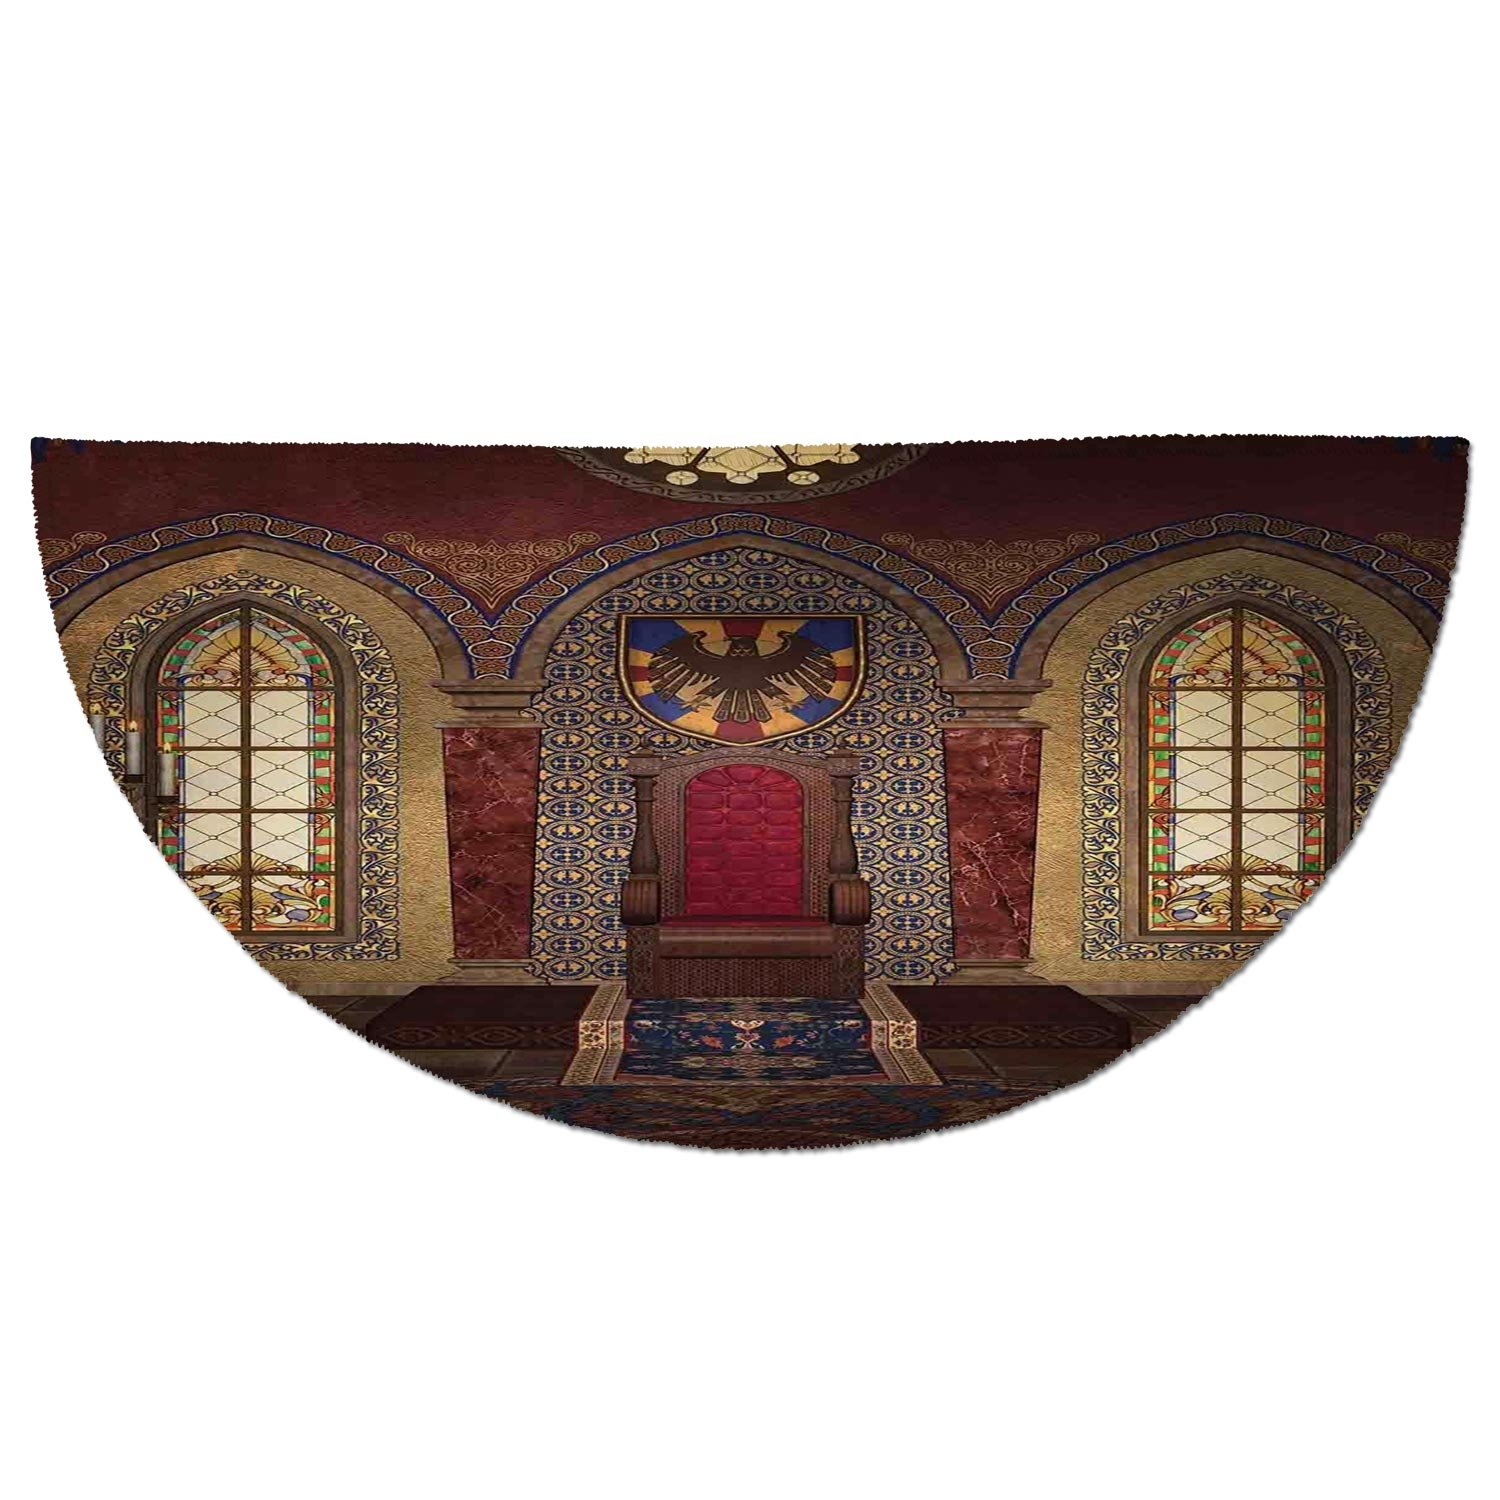 Half Round Door Mat Entrance Rug Floor Mats,Gothic,Red Medieval Throne in Chapel Eagle Portrait on Wall Ancient Fantasy Building Print,Brown Ruby,Garage Entry Carpet Decor for House Patio Grass Water